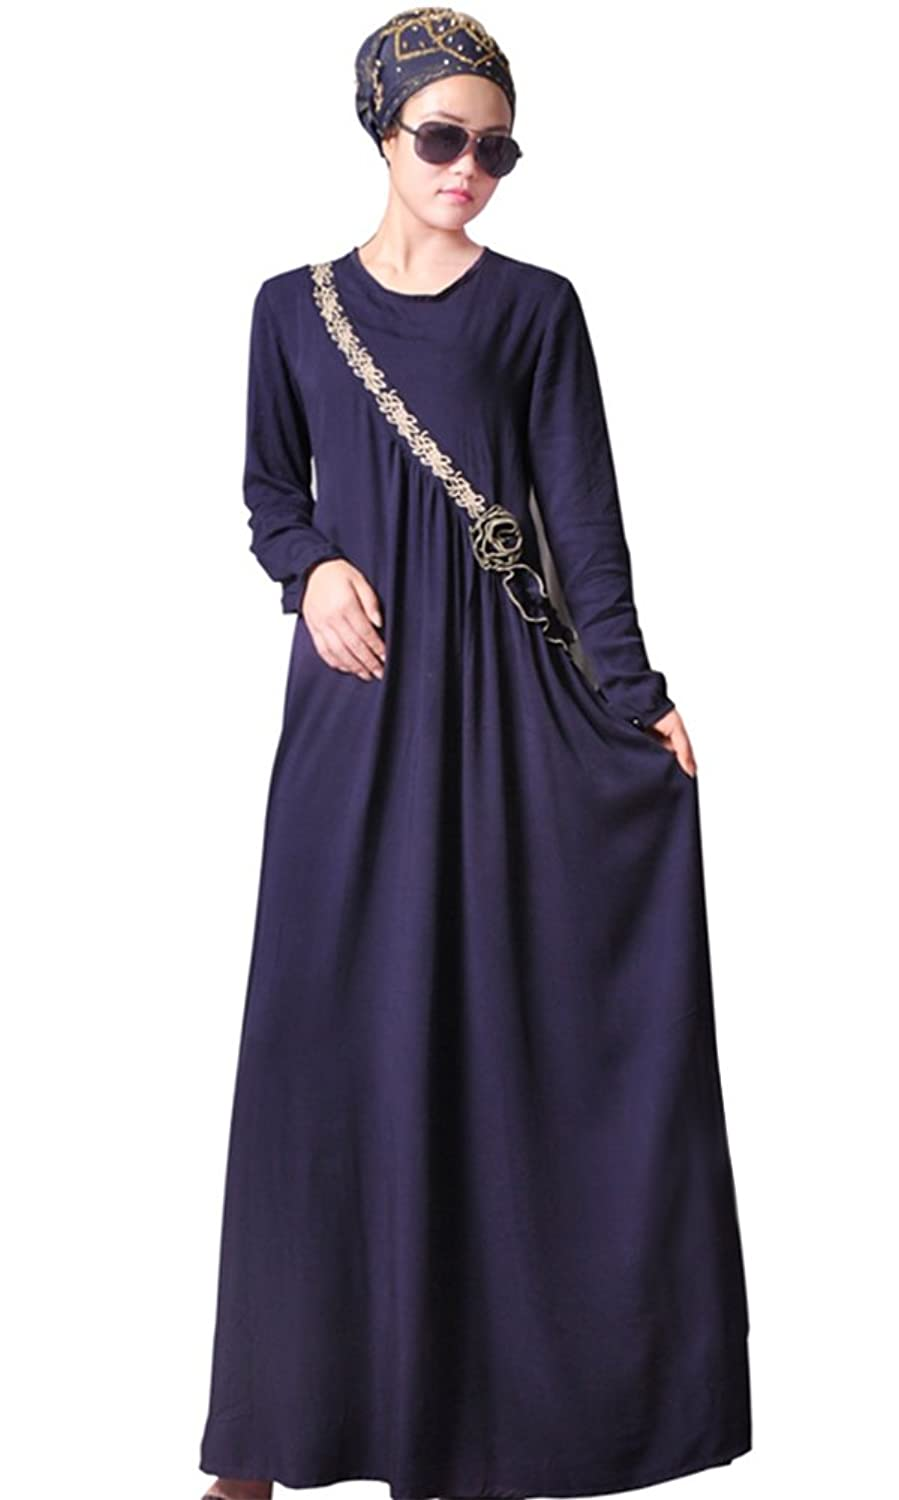 Ababalaya Abaya Muslim Women's Long Sleeve Casual Maxi Dress